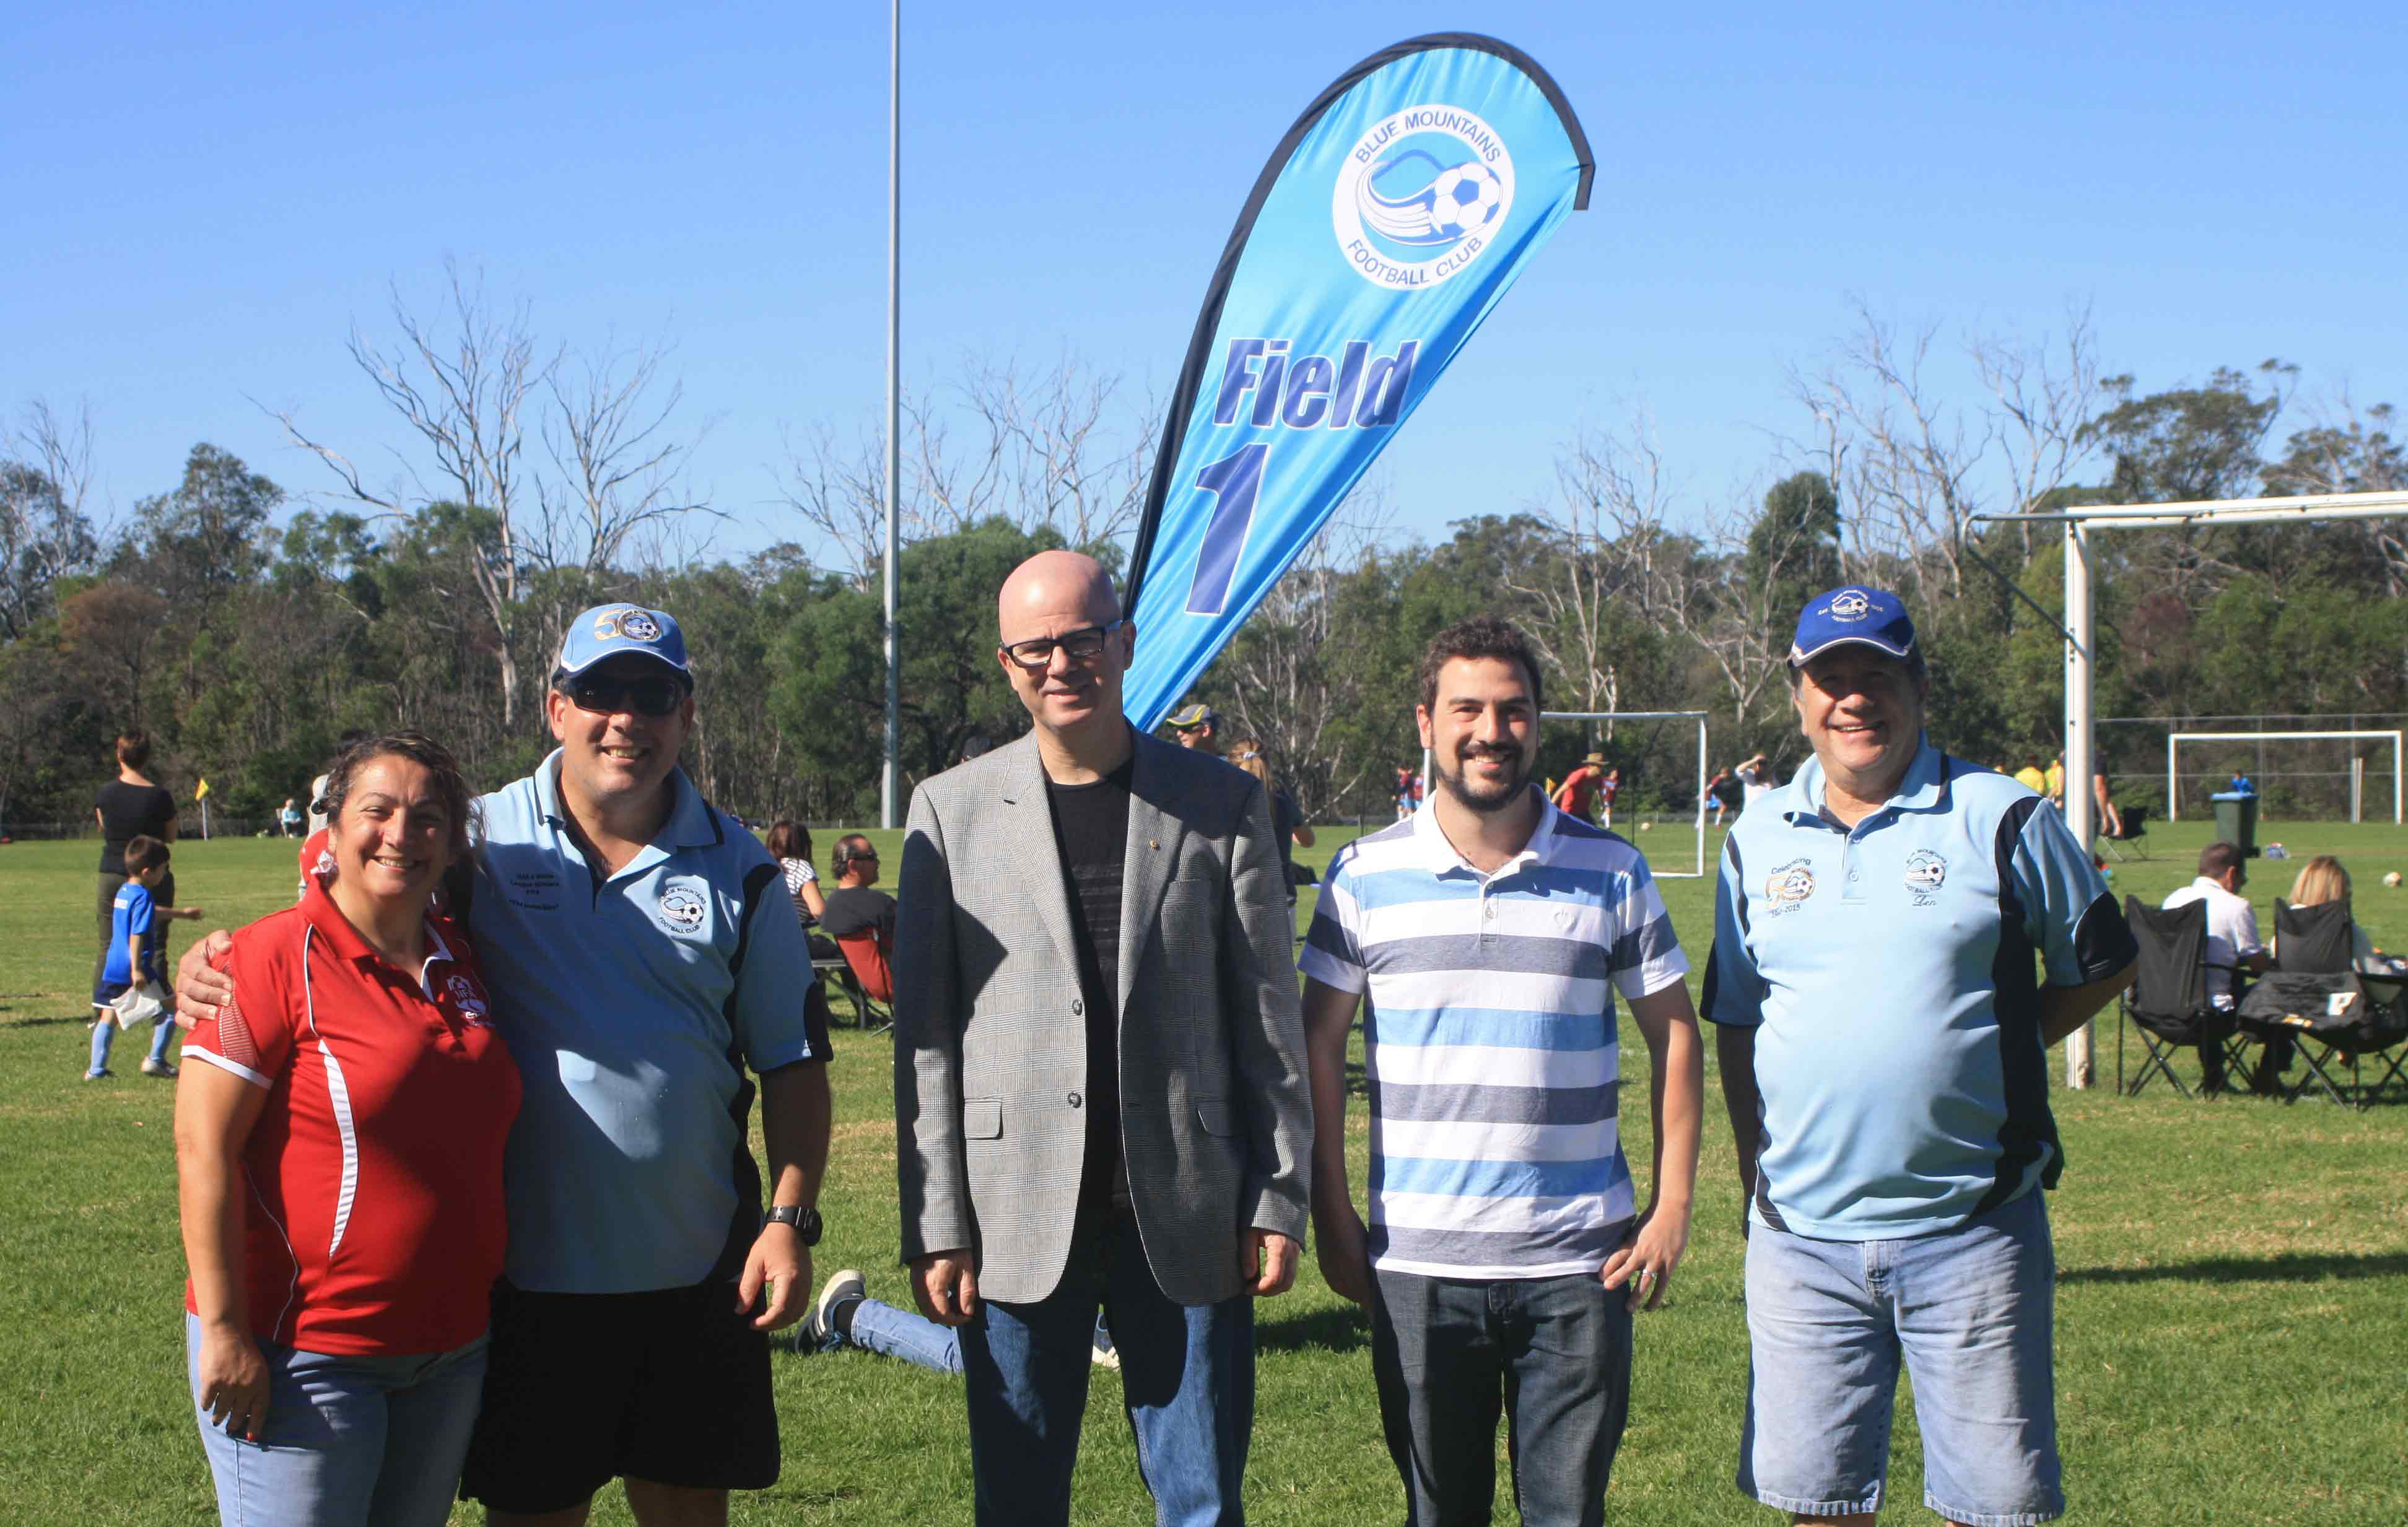 Welcome back to Knapsack: Mayor and Ward 4 Councillor, Mark Greenhill with Cr Brendan Christie and Fran Refalo (President, Nepean Football Association), David Smith & Len Bowman (President & Treasurer, Blue Mountains Football Club) open the winter sports season after a $460,000 irrigation project  to improve the playing surface of the popular sportsground.